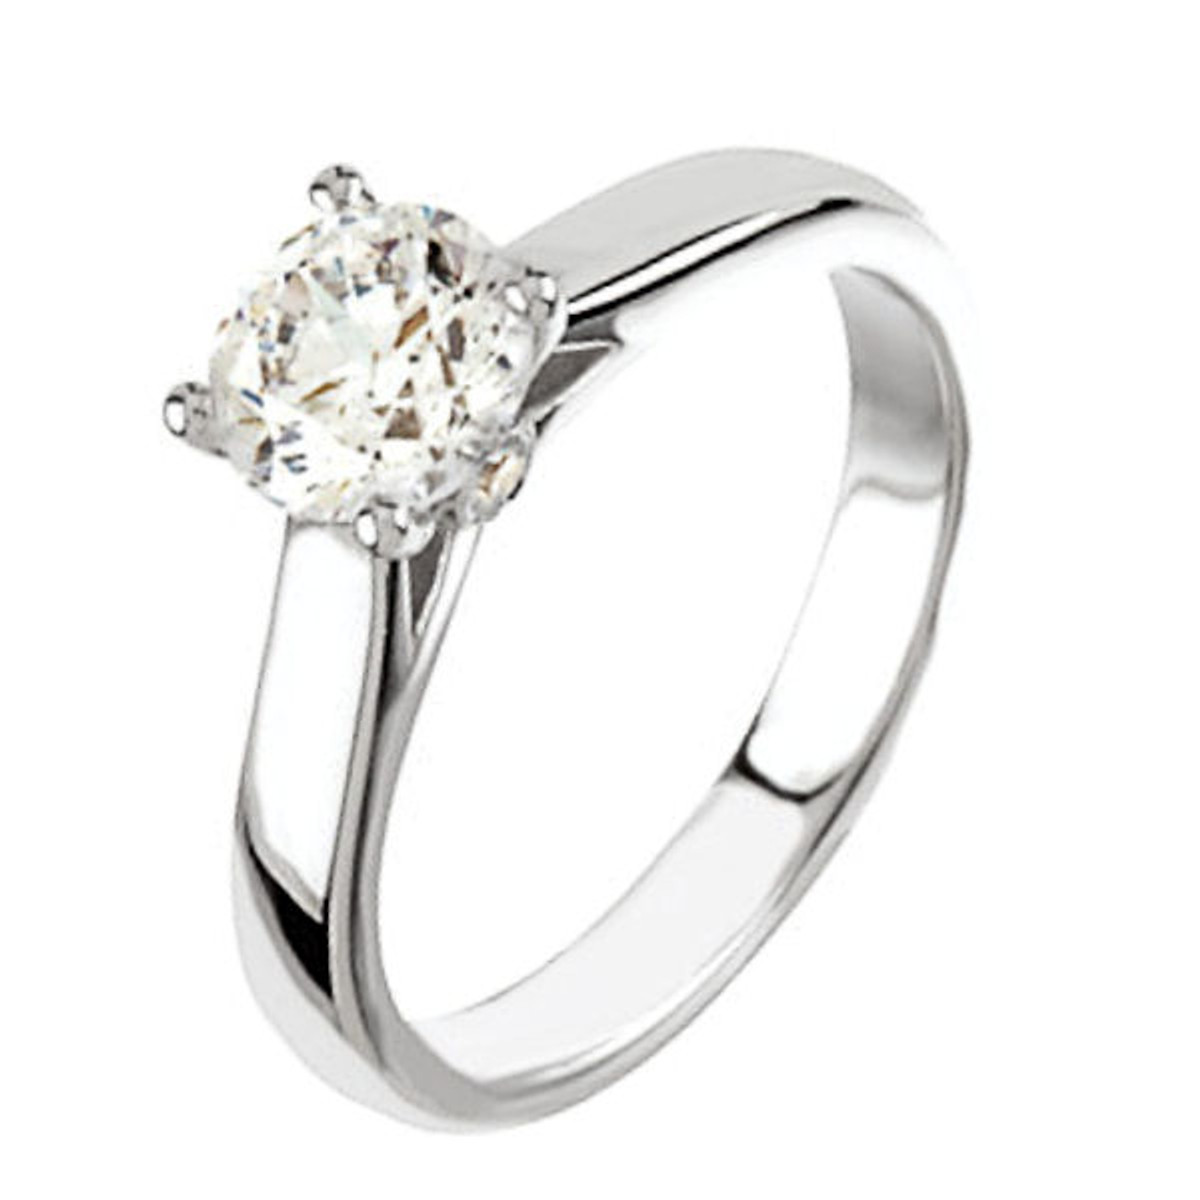 Round Cut Cathedral Solitaire Engagement Ring